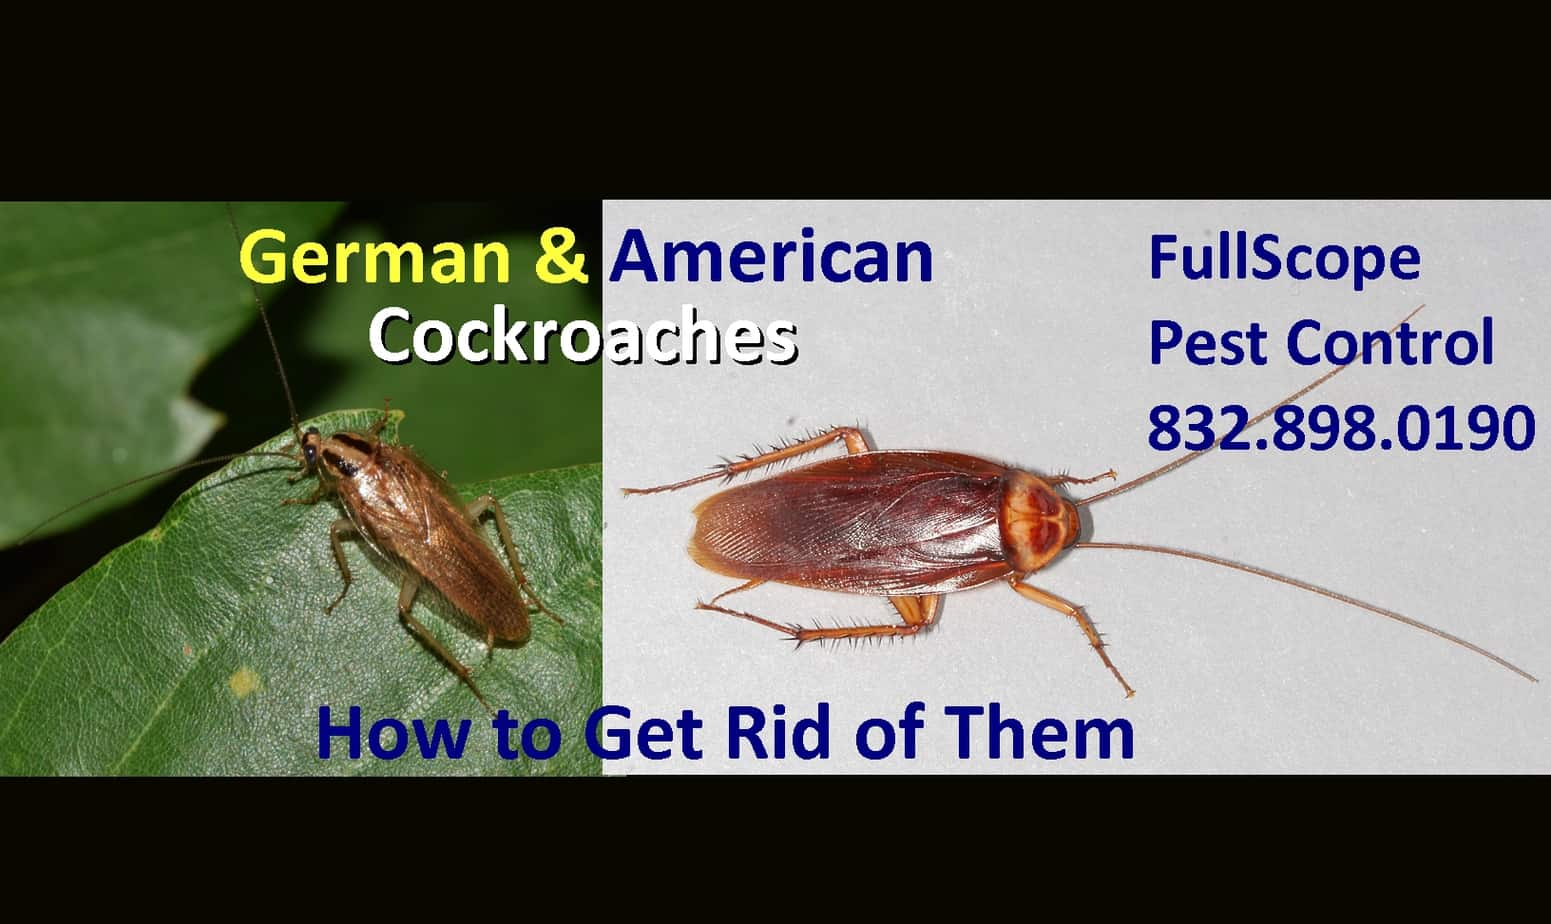 How to Get Rid of German Cockroaches and American Cockroaches in Texas